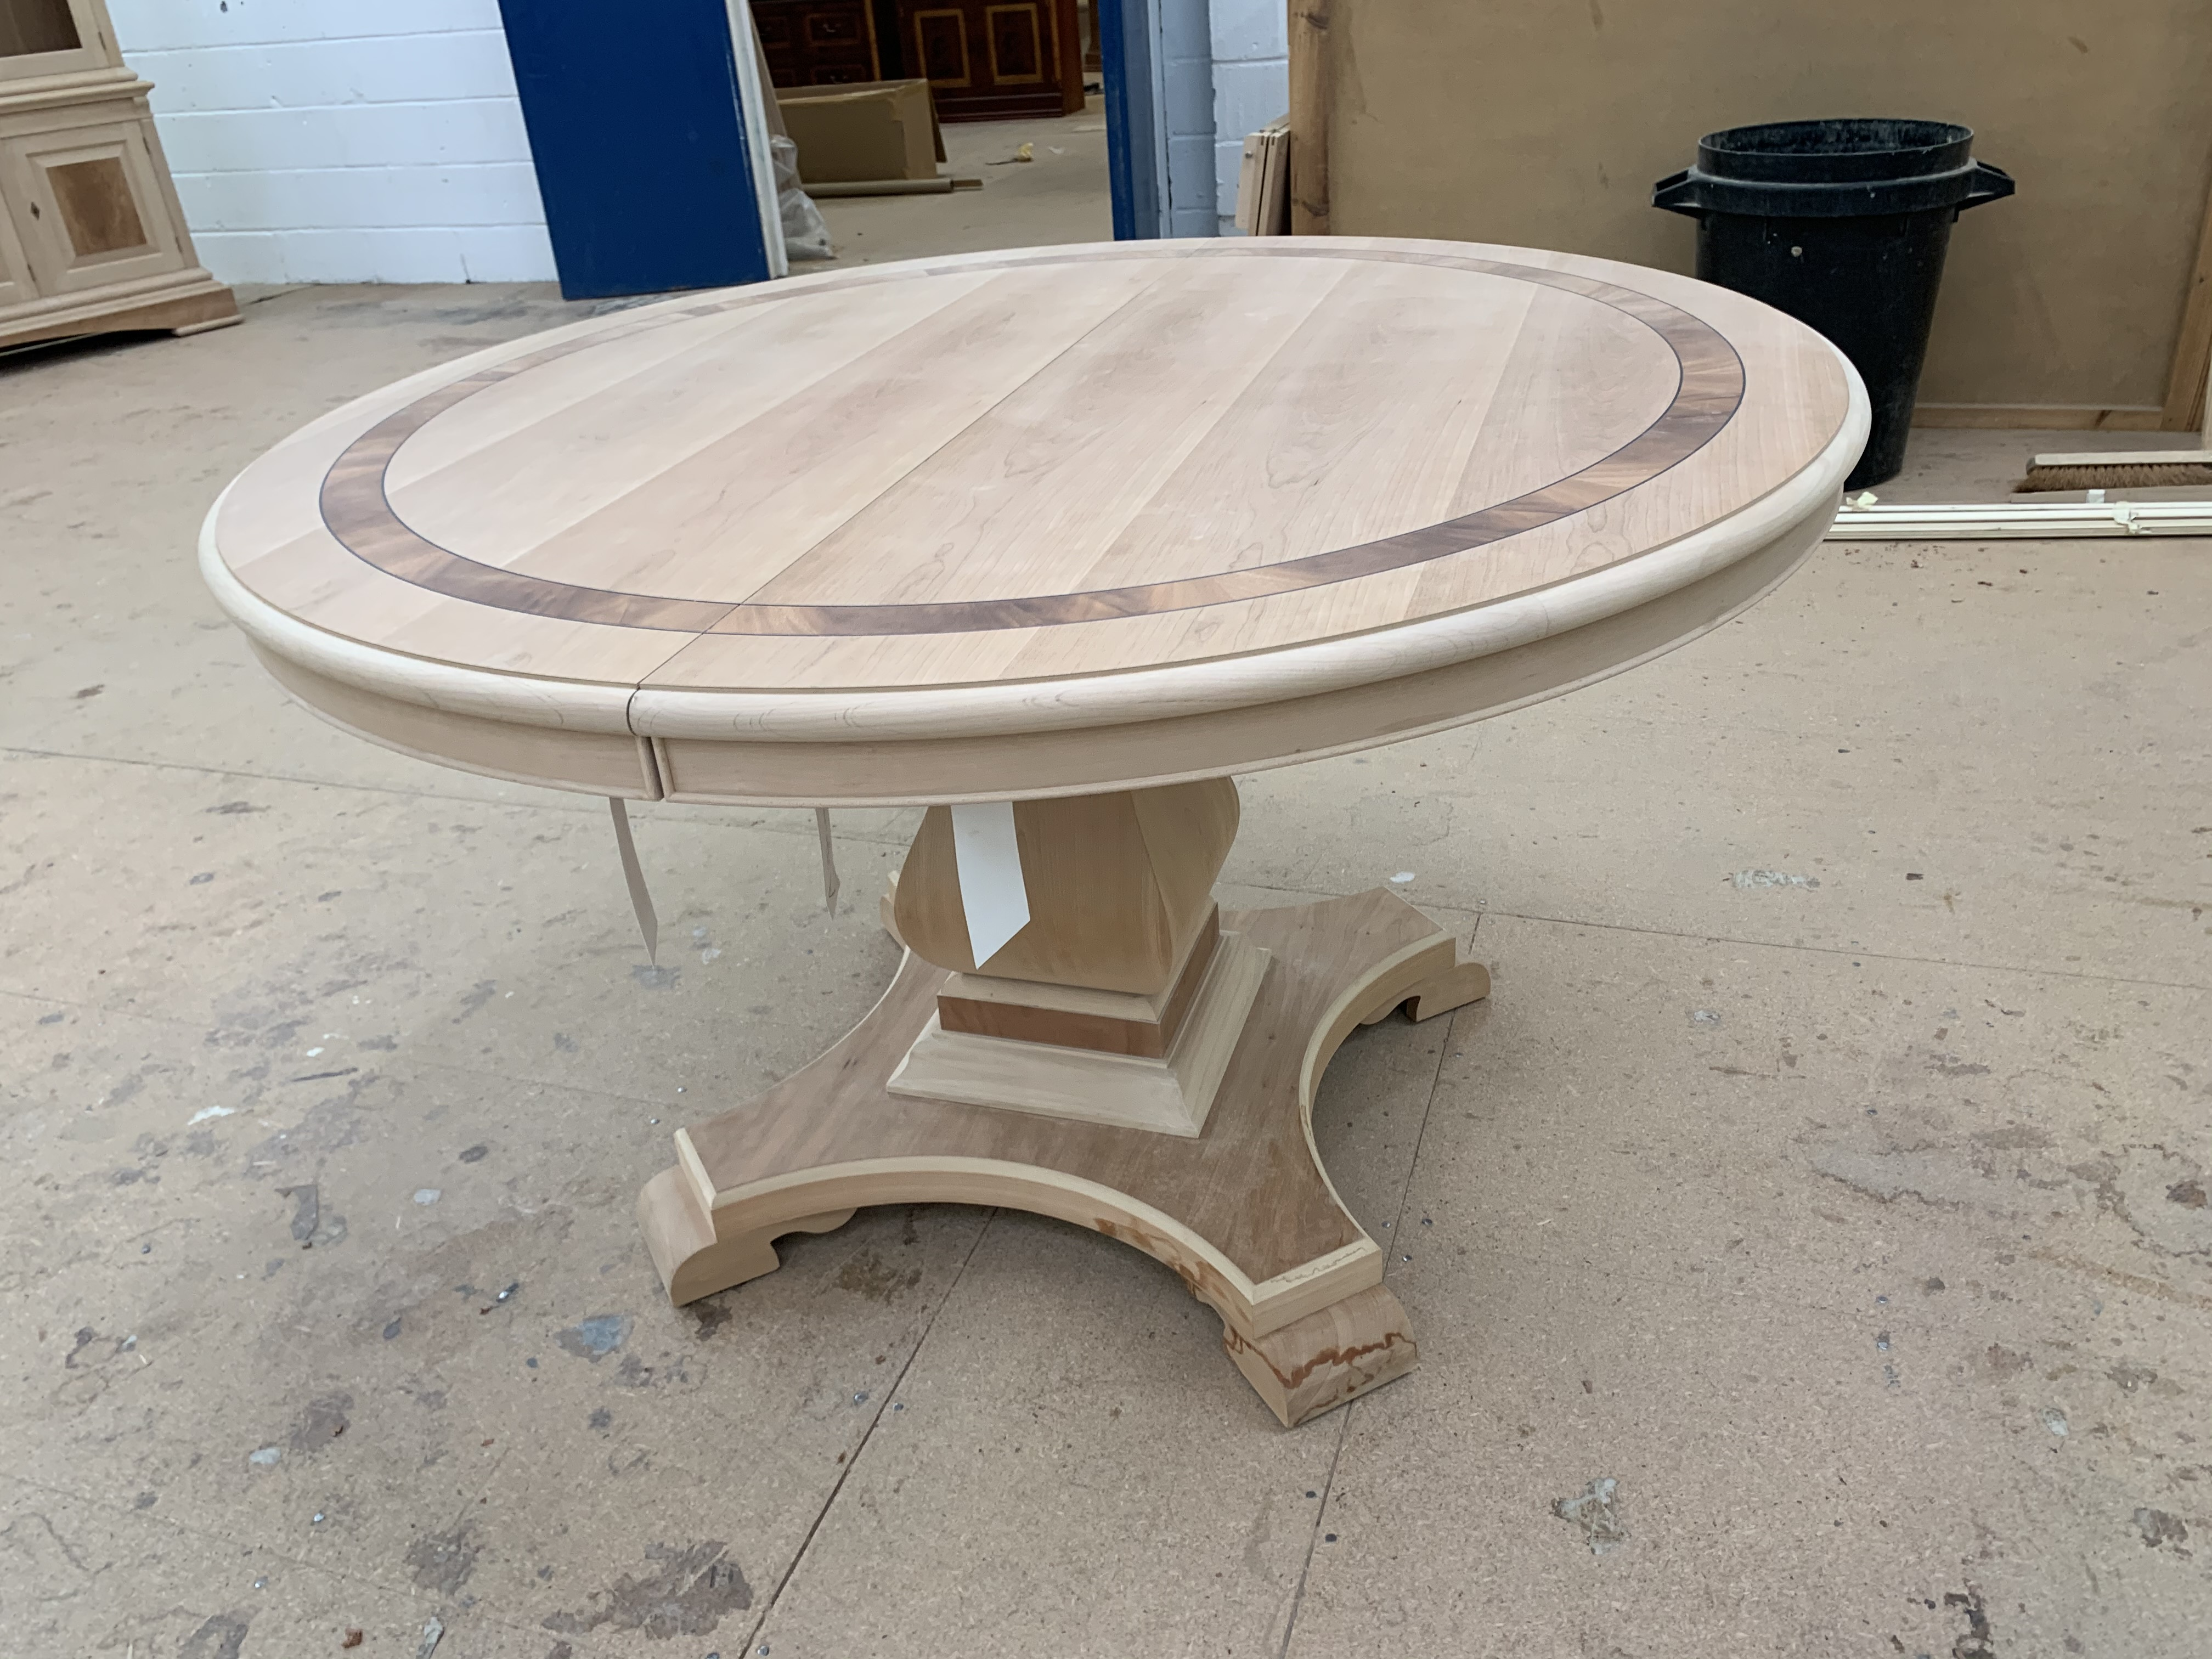 Lot 42 - Single pedestal extending Dining Table, requires finishing/polishing, finished RRP £4152. Model no